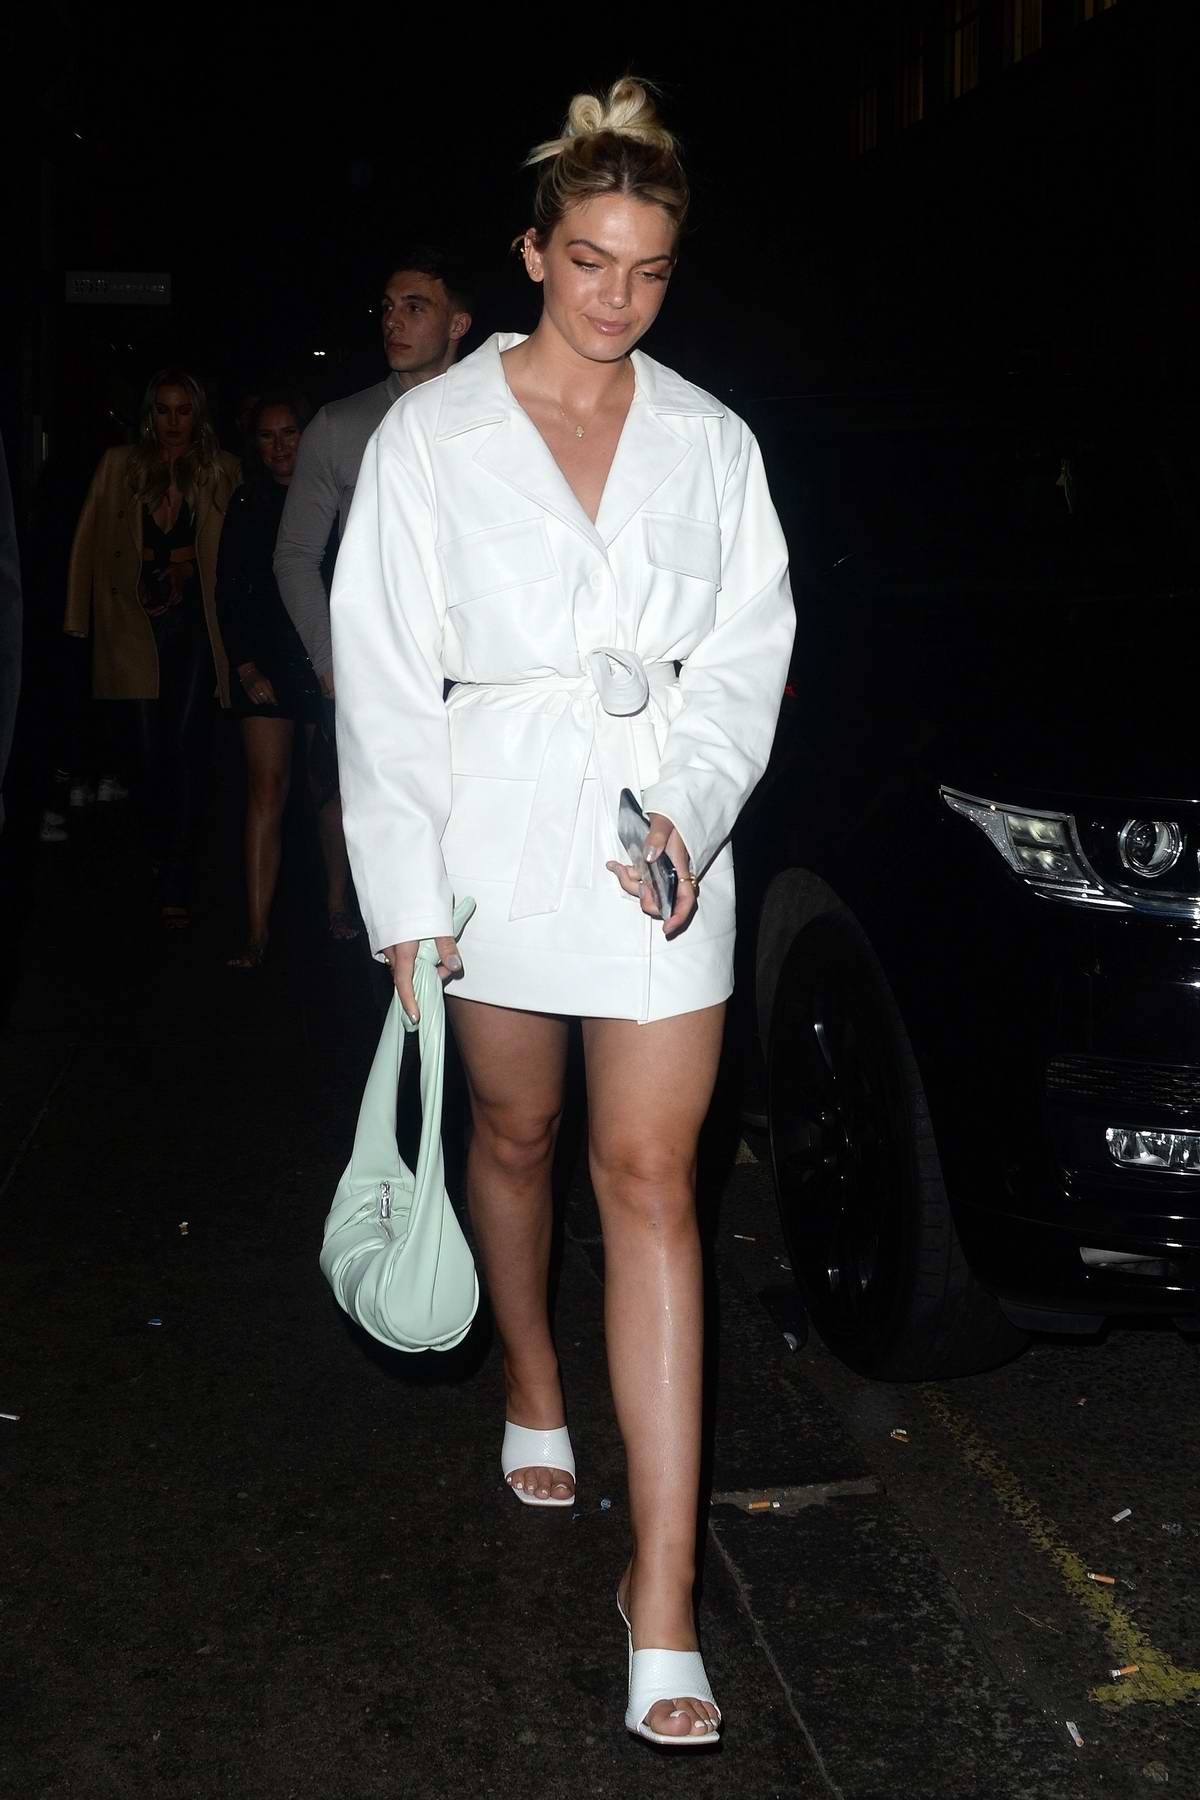 Louisa Johnson seen wearing a white mini dress as she leaves the Sintallite Party in London, UK